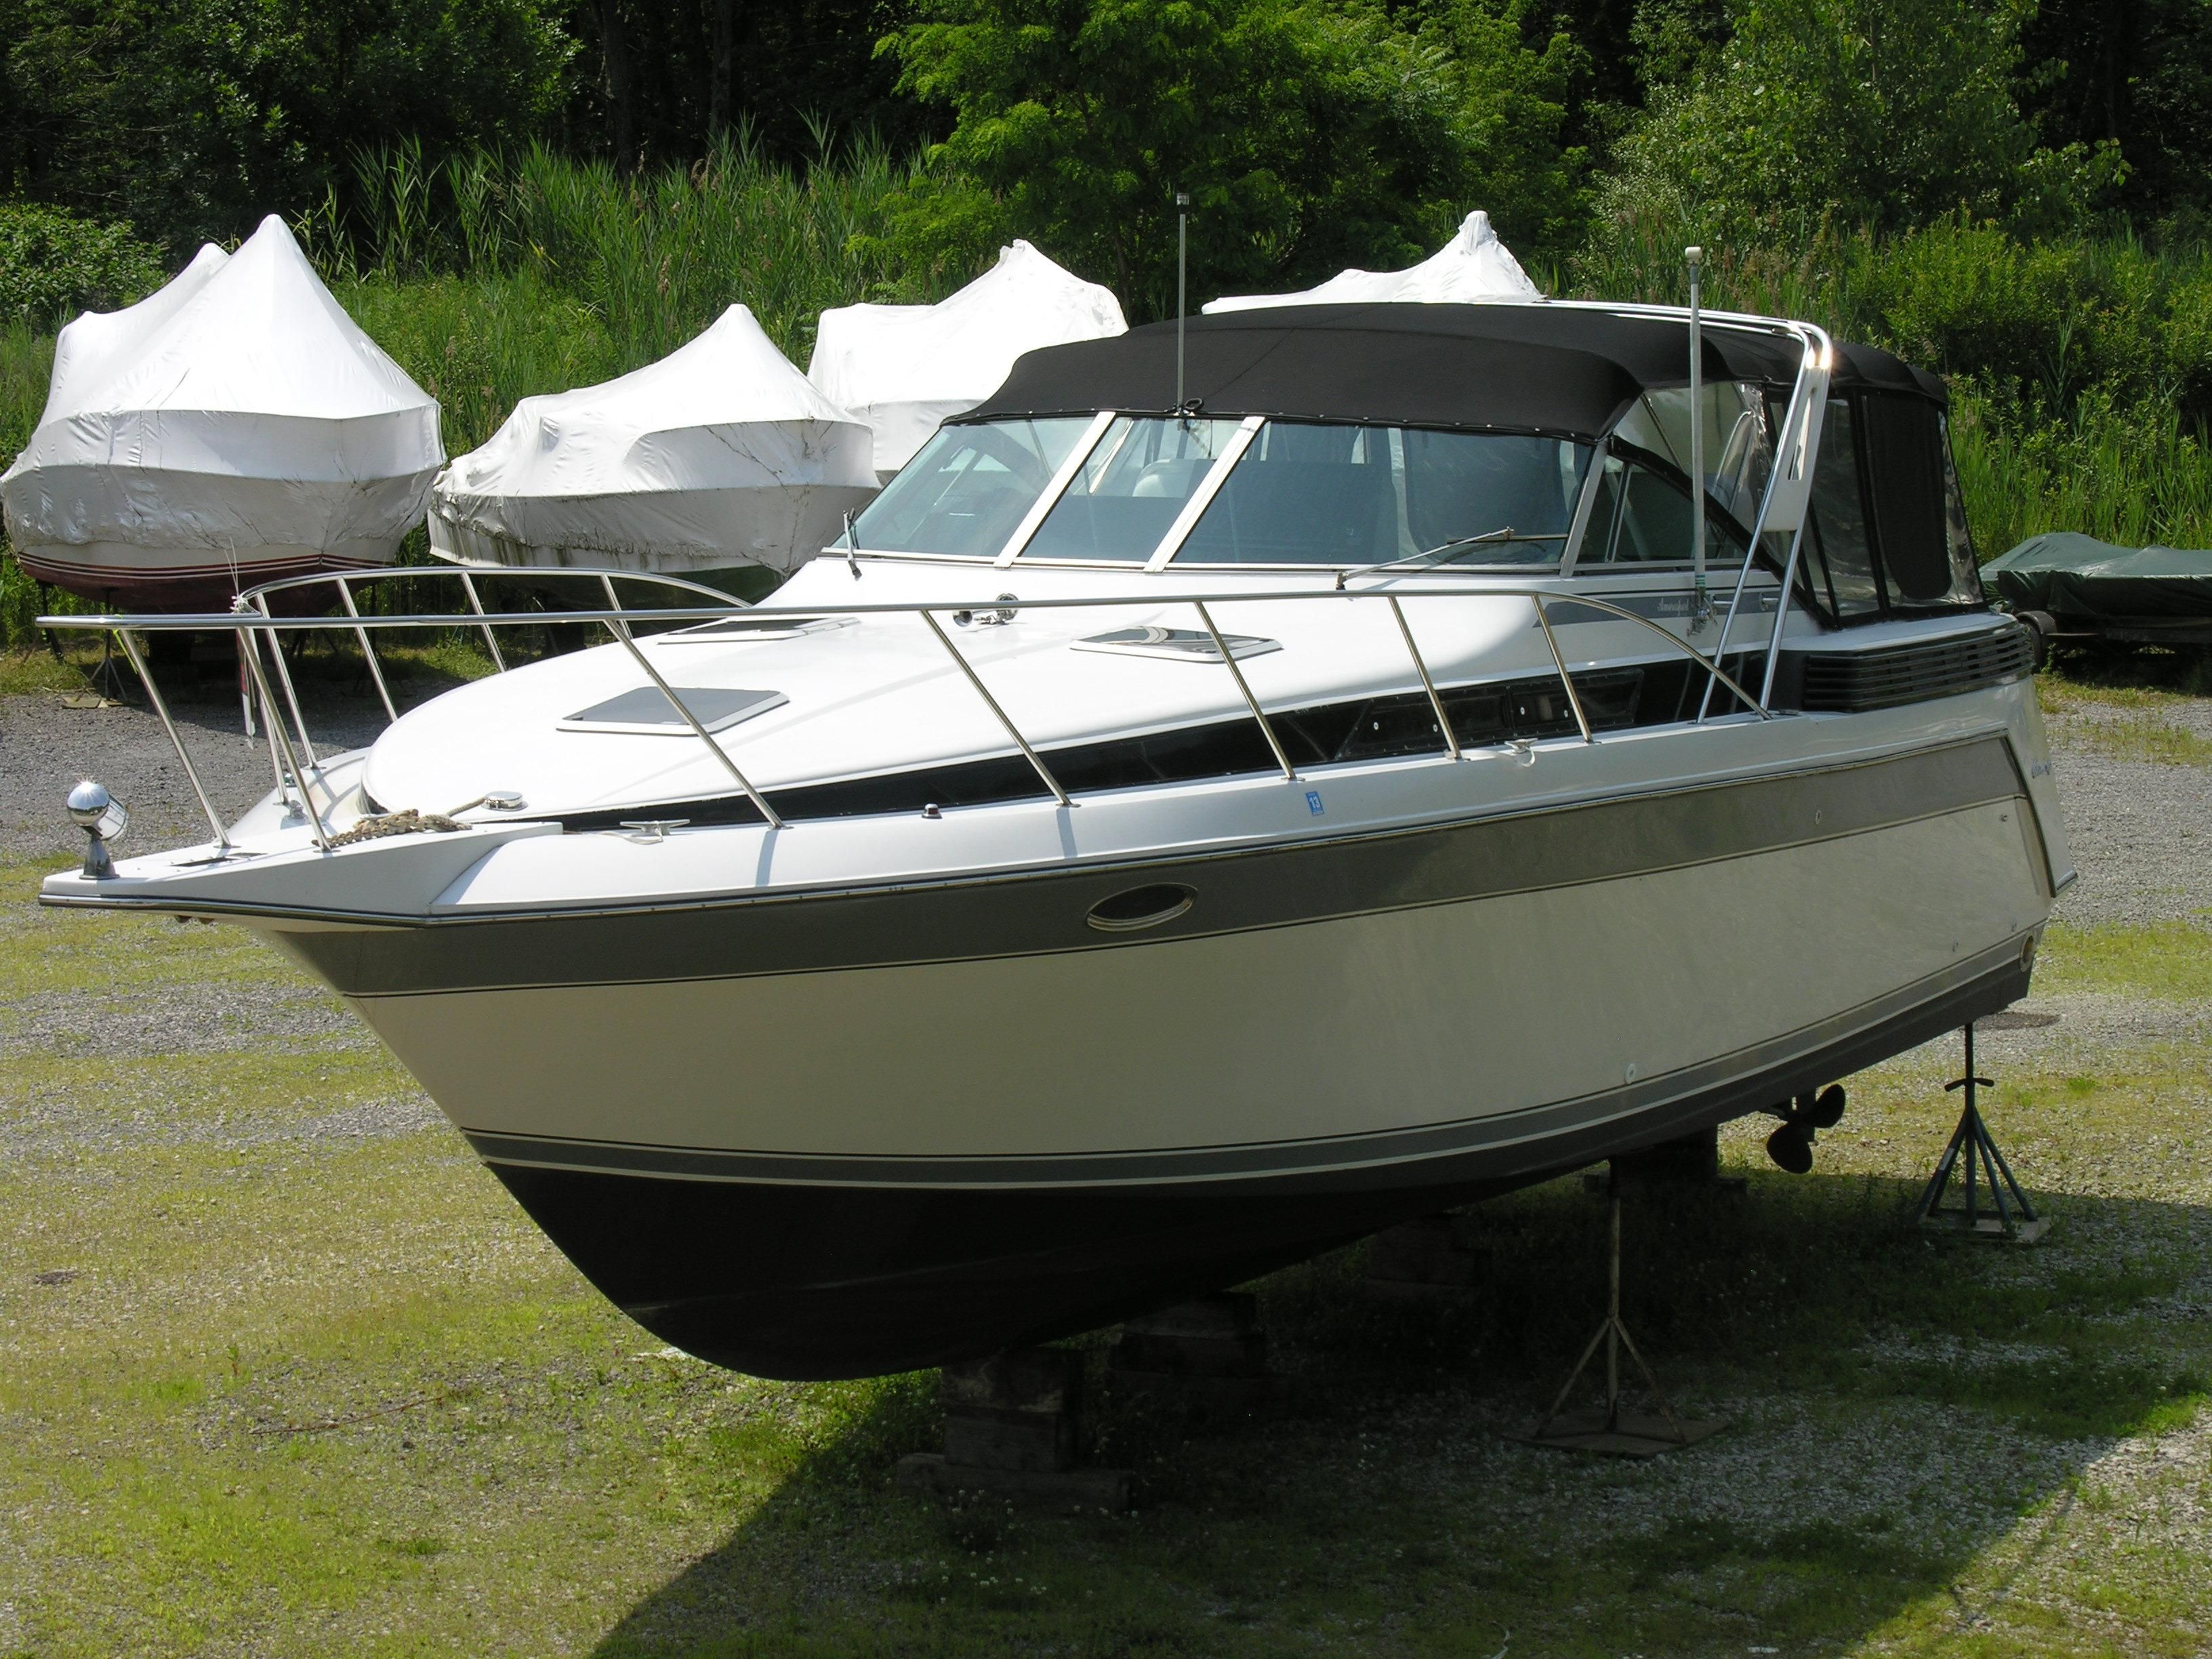 1988 Chris-Craft 370 Amerosport Express Power Boat For Sale -  www.yachtworld.com